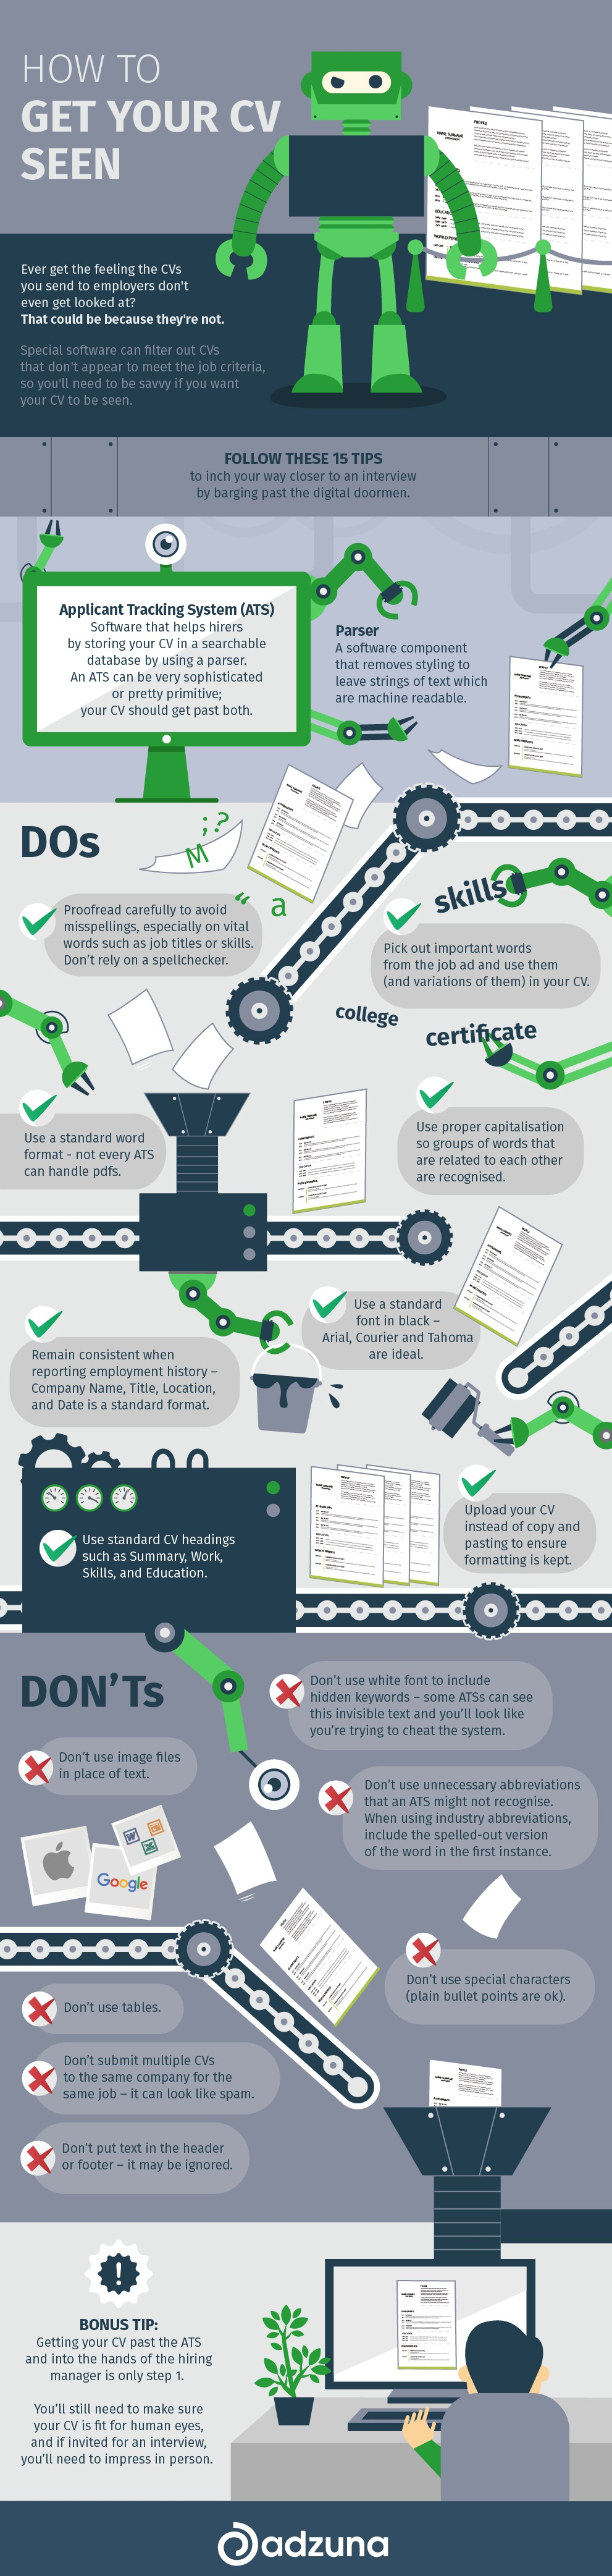 Get-Your-CV-Seen-EN-infographic